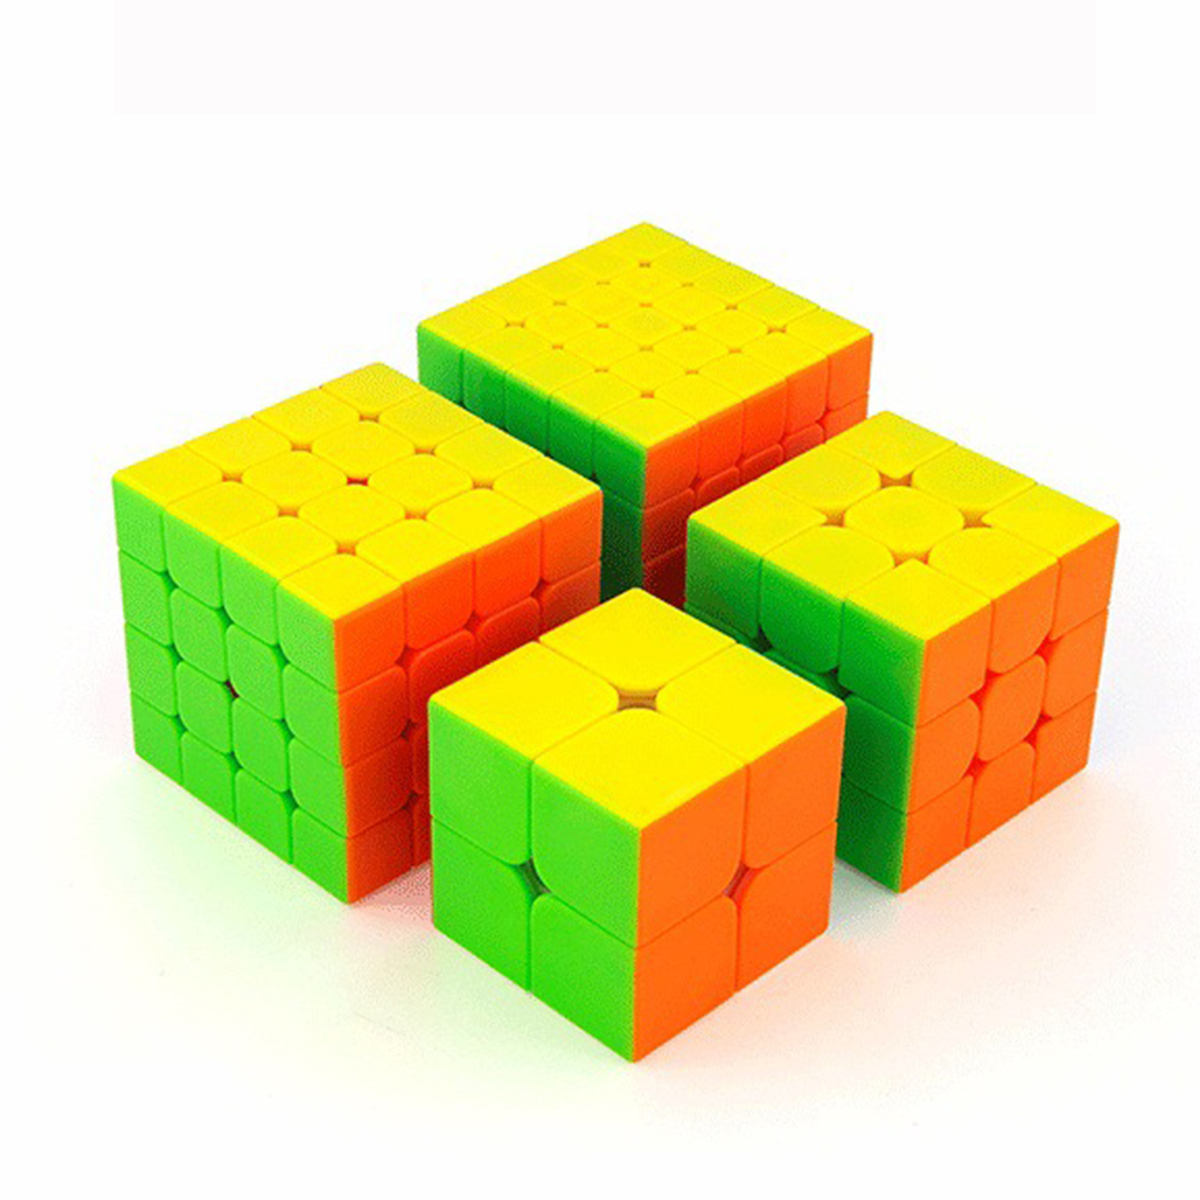 4PCS Set Best Birthday Gift 2x2x2 3x3x3 4x4x4 5x5x5 Stickerless Magic Cube set Puzzle Boys 2 2 2 3 3 3 4 4 4 5 5 5 Moyu Cubes in Magic Cubes from Toys Hobbies